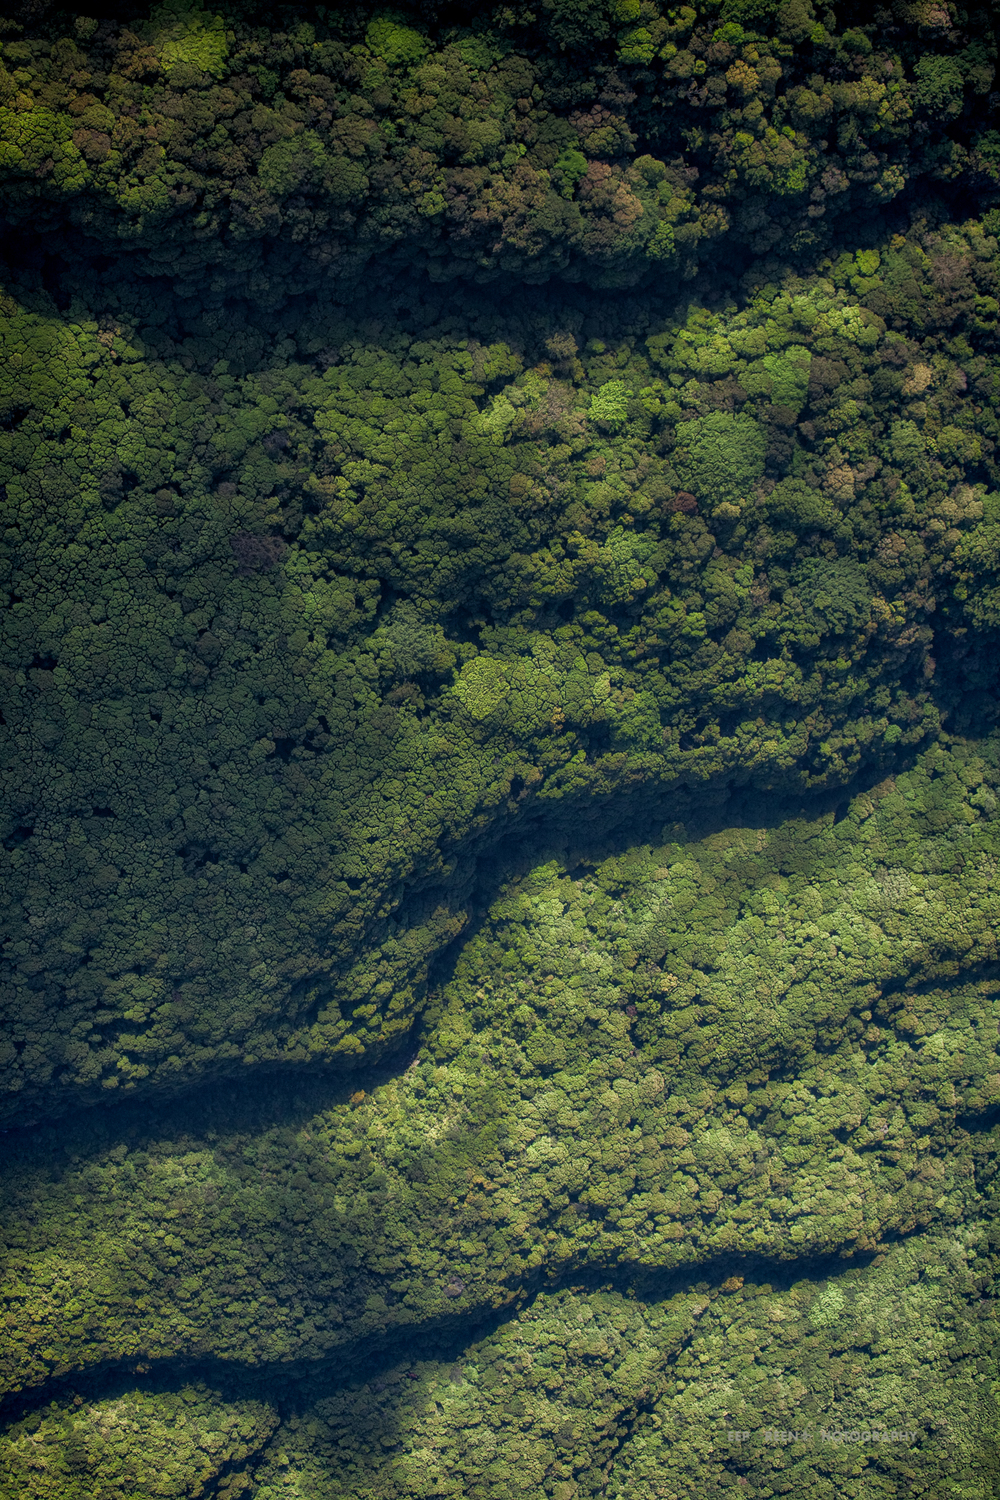 rainforest patterns on the flanks of the Rincon de la Vieja Volcano National Park, taken from an altitude of 6,000 feet in an open gyro plane